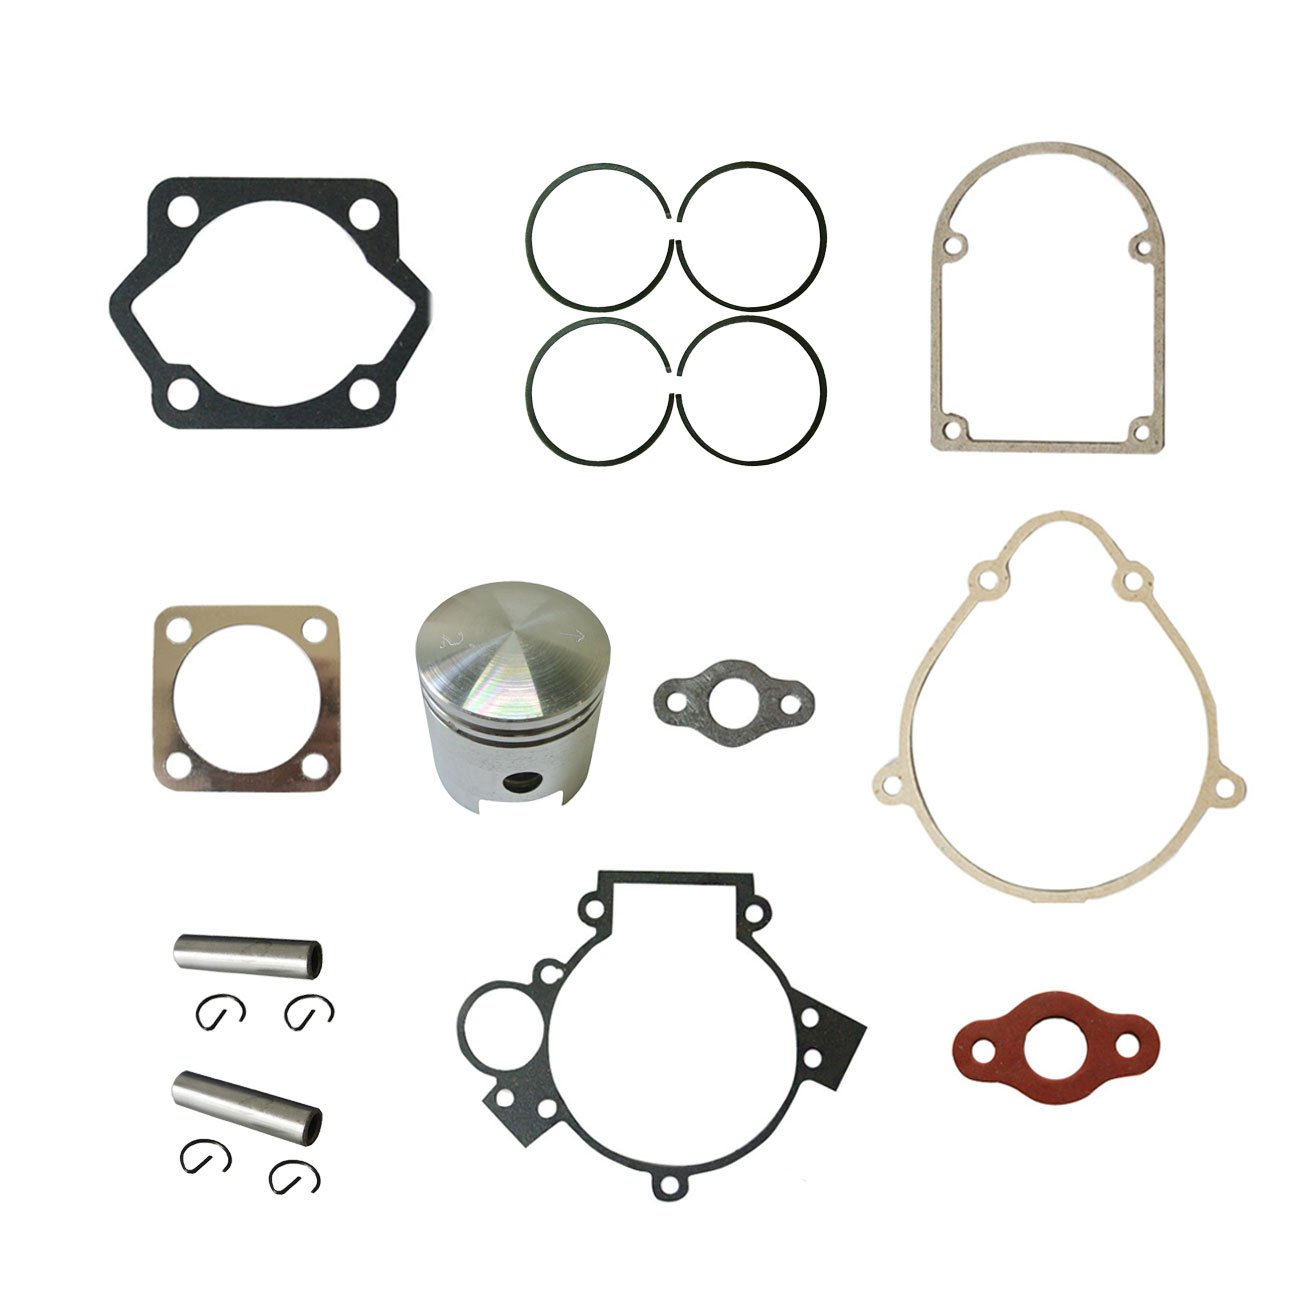 2*Gasket Set/&30xSquare Clutch Pads For 80cc Motorized Bicycle Bike Motor Engine